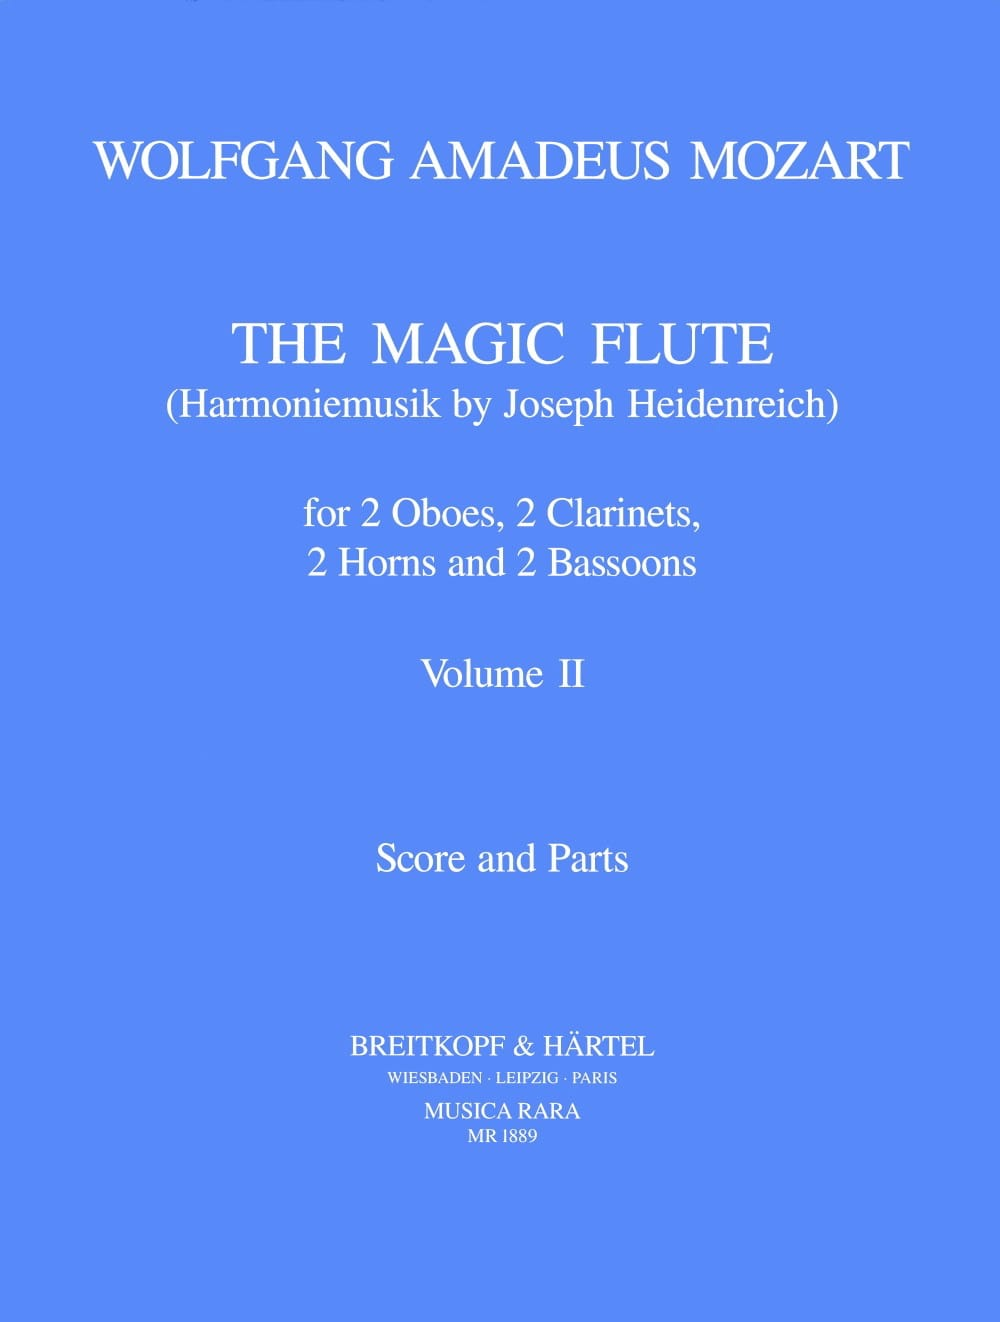 MOZART - The magic flute Volume 2 - Harmoniemusik - Score parts - Partition - di-arezzo.co.uk